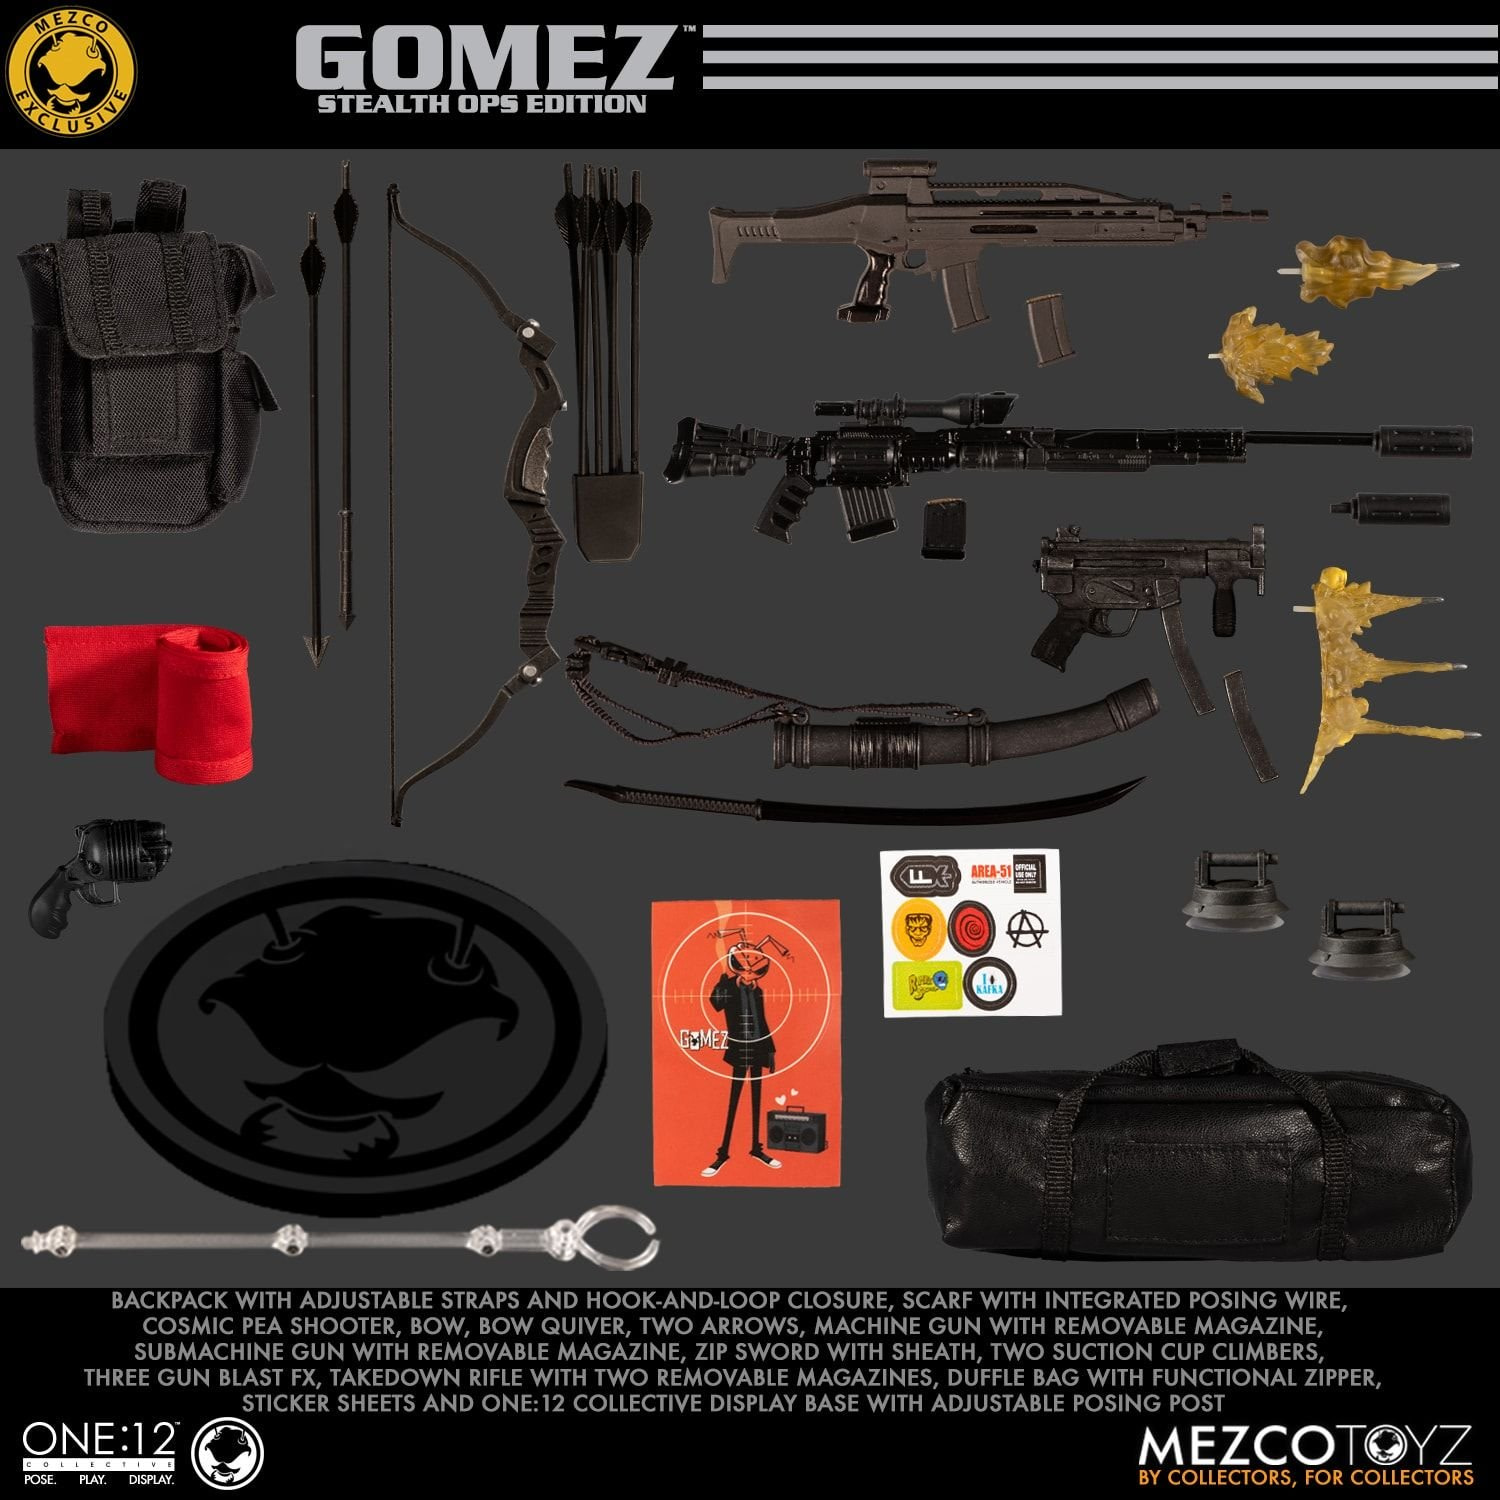 My New Collecting Obsession: Mezco Toyz Gomez